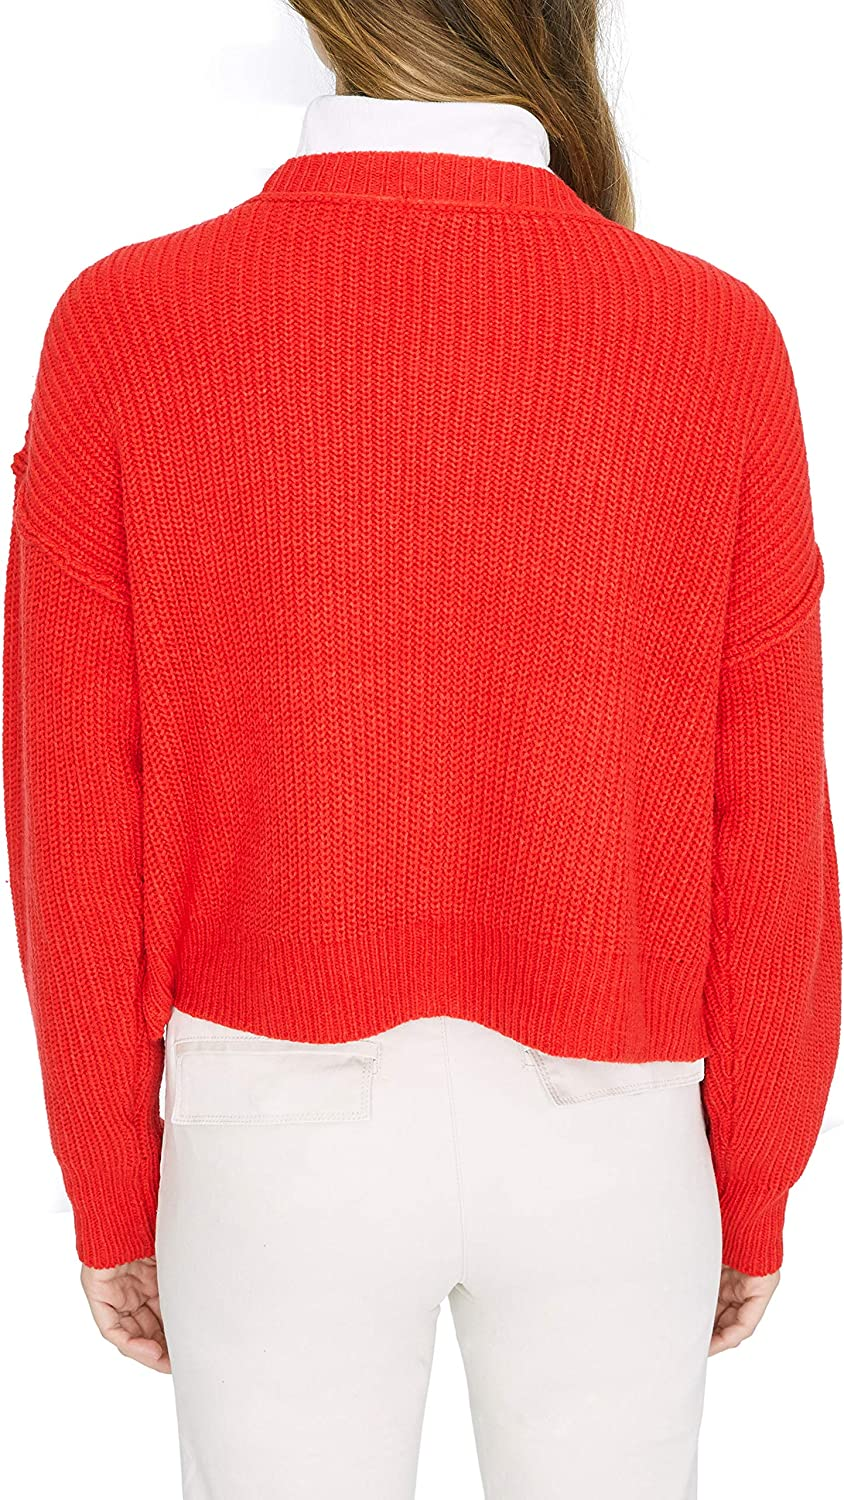 Sanctuary Womens Fall for It Cable Knit Acrylic Cardigan Sweater